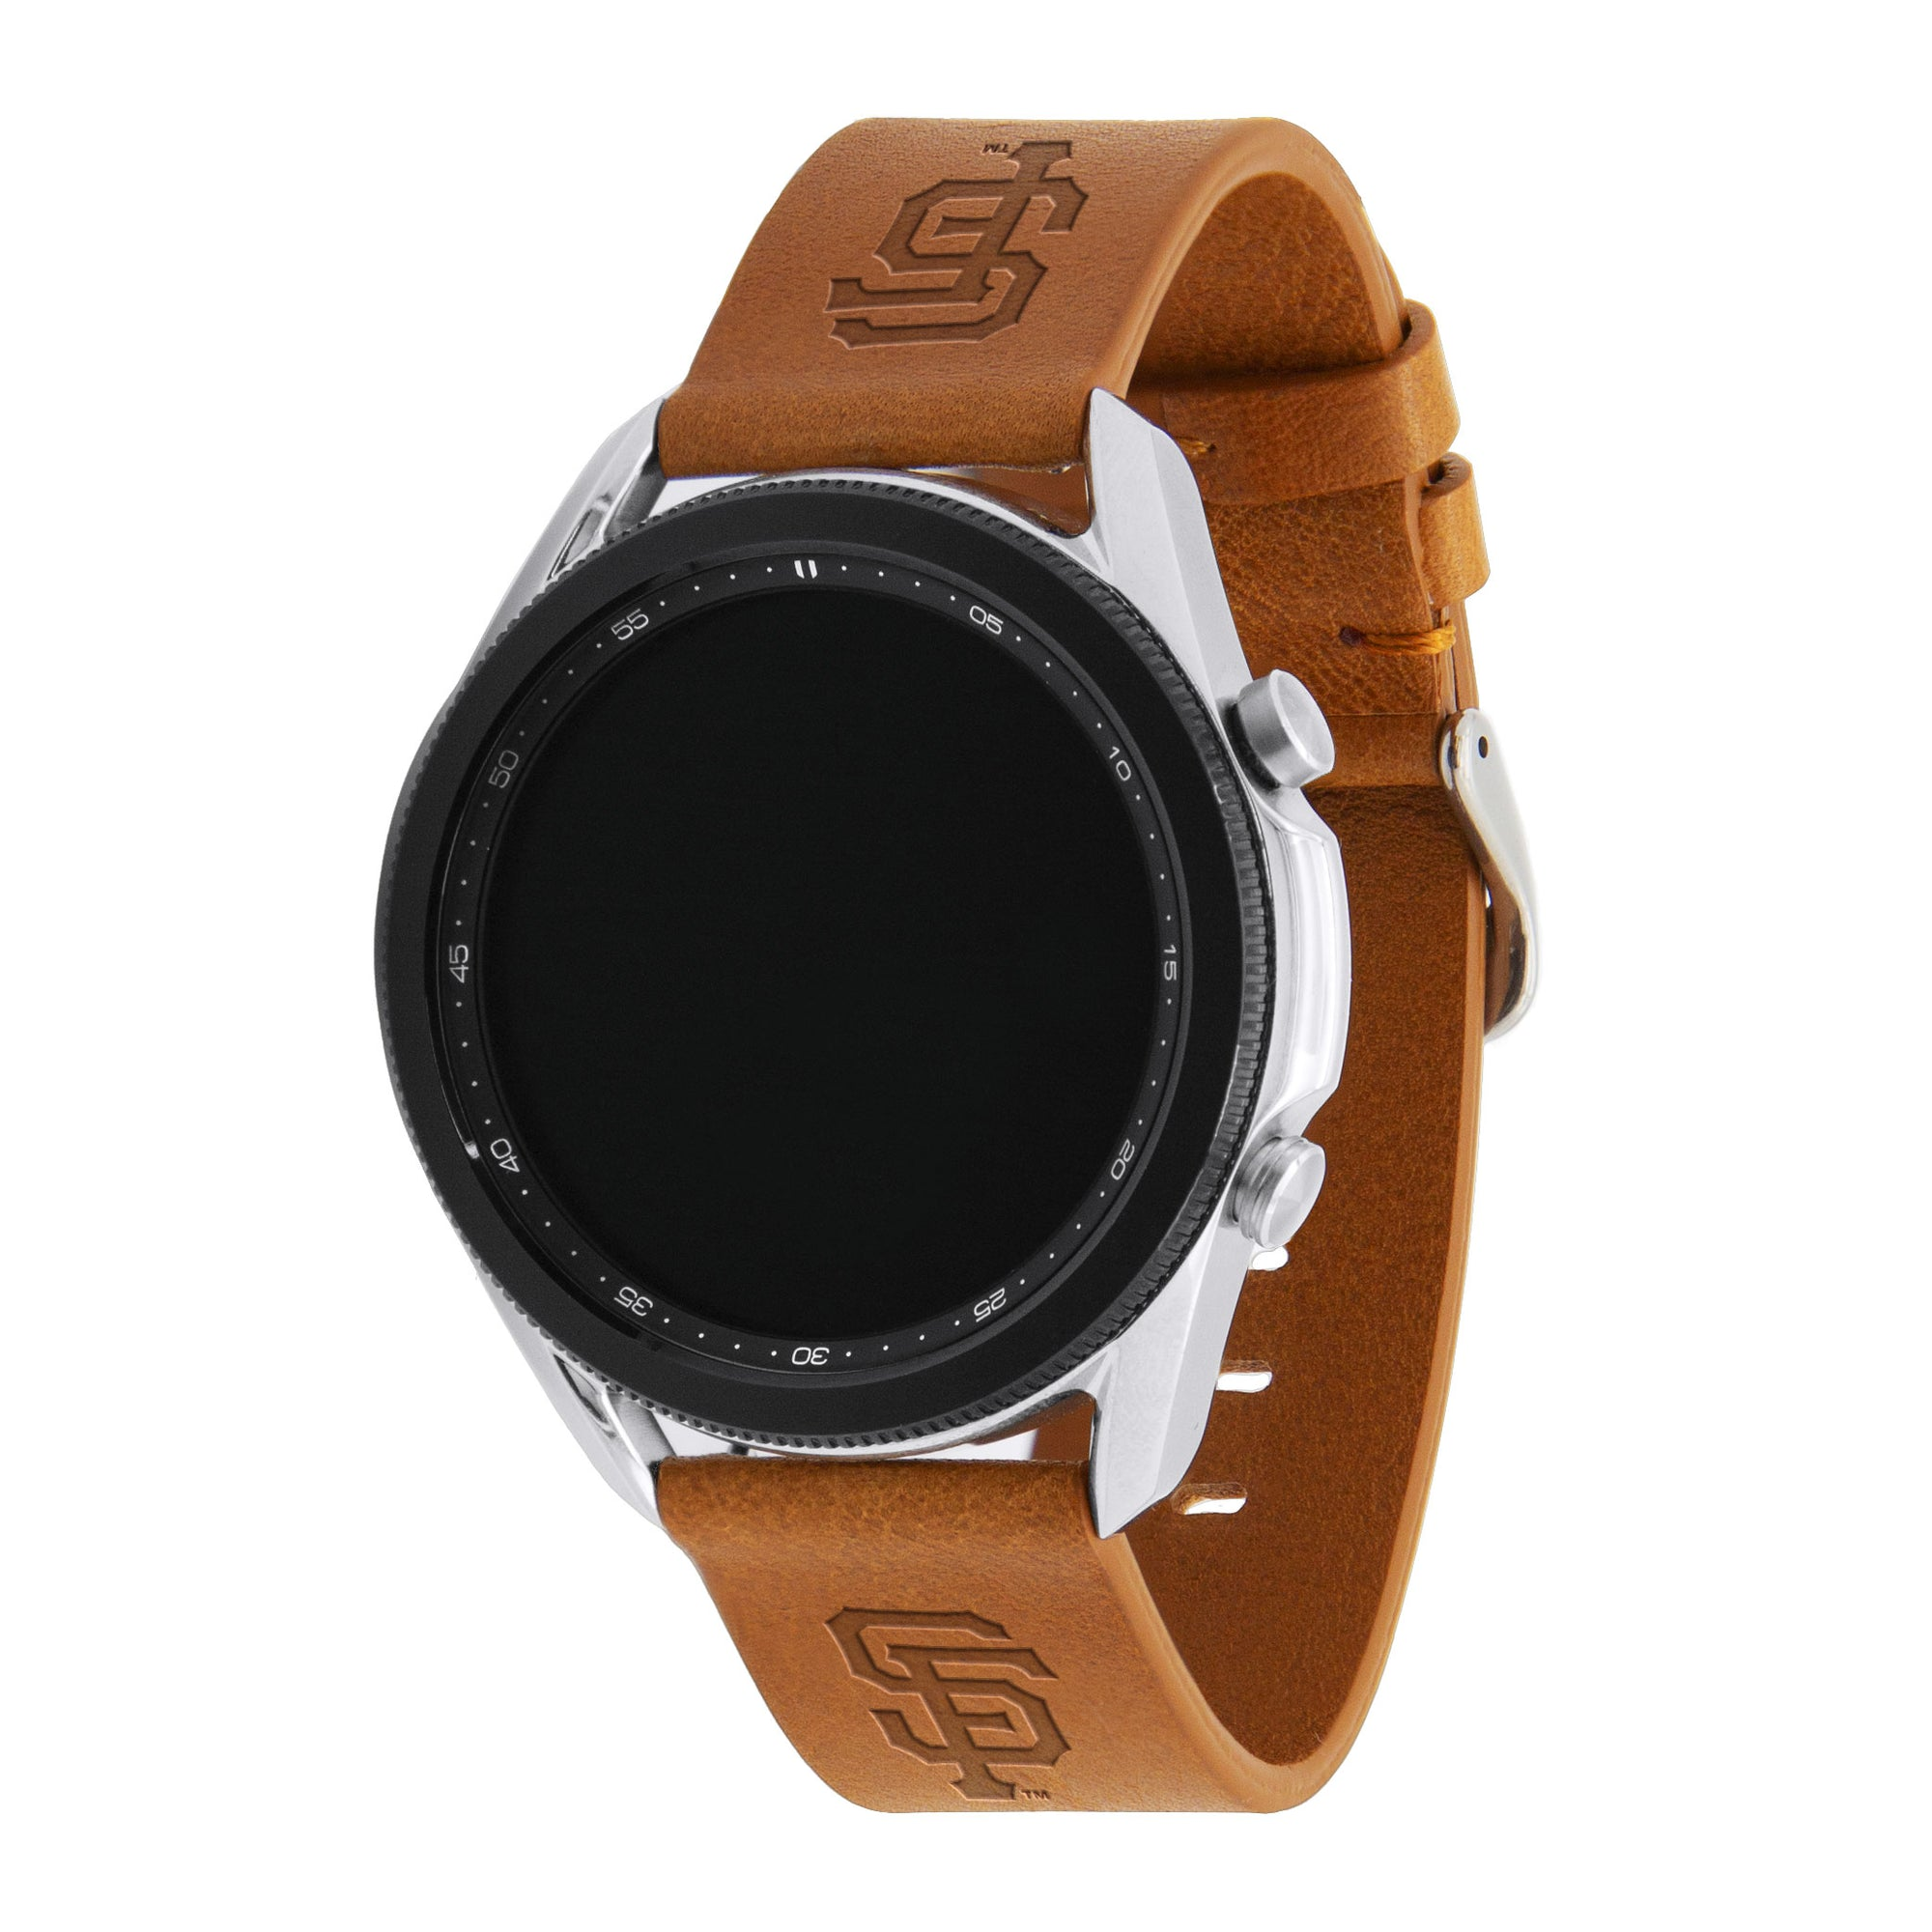 San Francisco Giants Quick Change Leather Watch Bands - AffinityBands